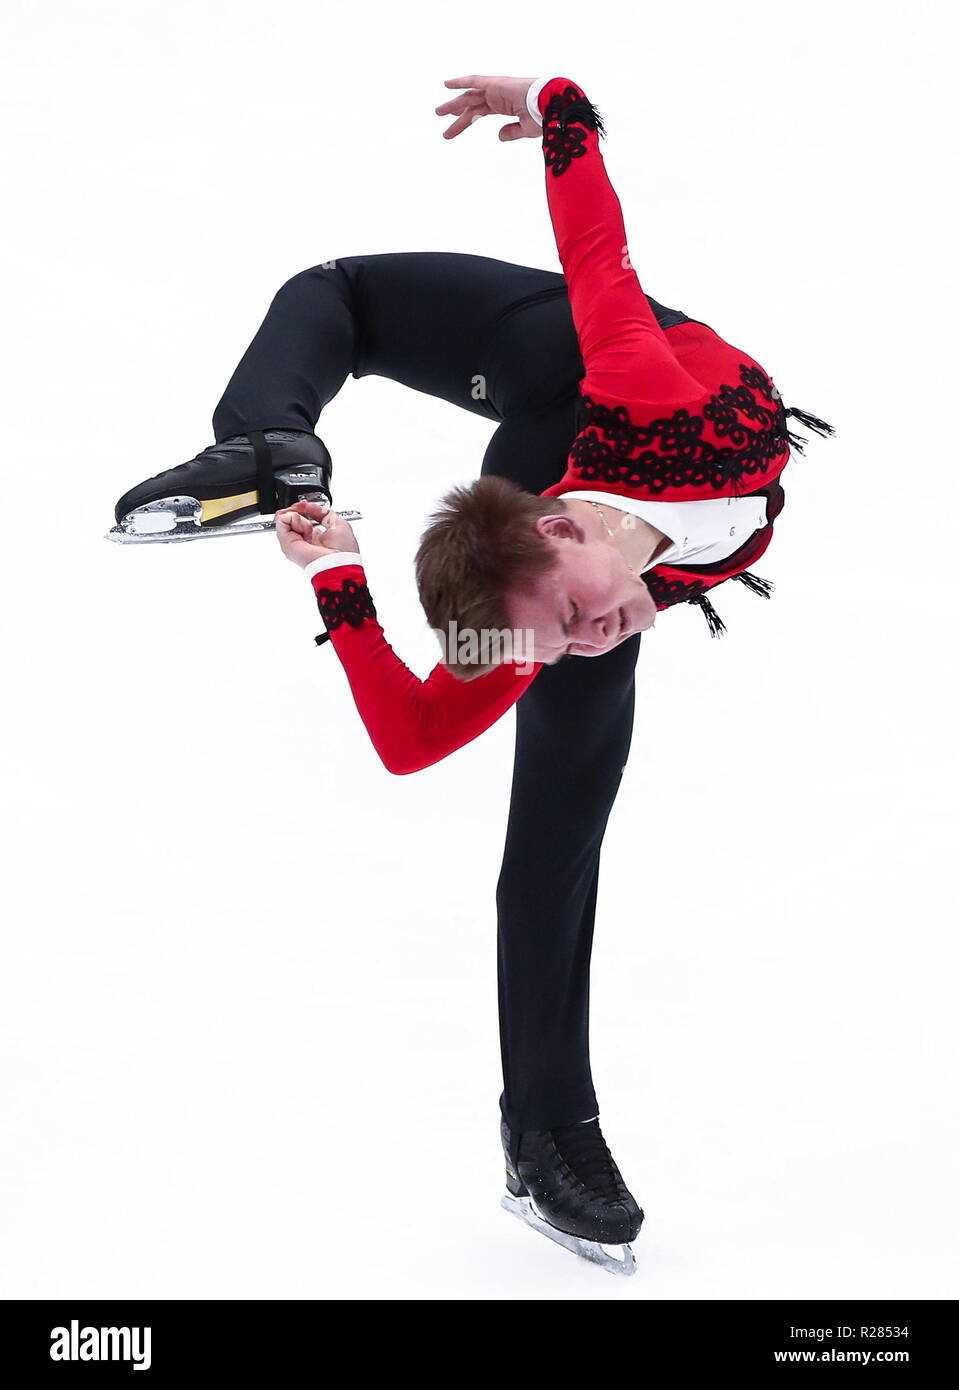 Moscow, Russia. 17th November 2018. MOSCOW, RUSSIA - NOVEMBER 17, 2018: Mikhail Kolyada of Russia performs a spin in his men's free skating programme at the 2018/19 ISU Grand Prix of Figure Skating Rostelecom Cup at Megasport Arena. Valery Sharifulin/TASS Credit: ITAR-TASS News Agency/Alamy Live News - Stock Image